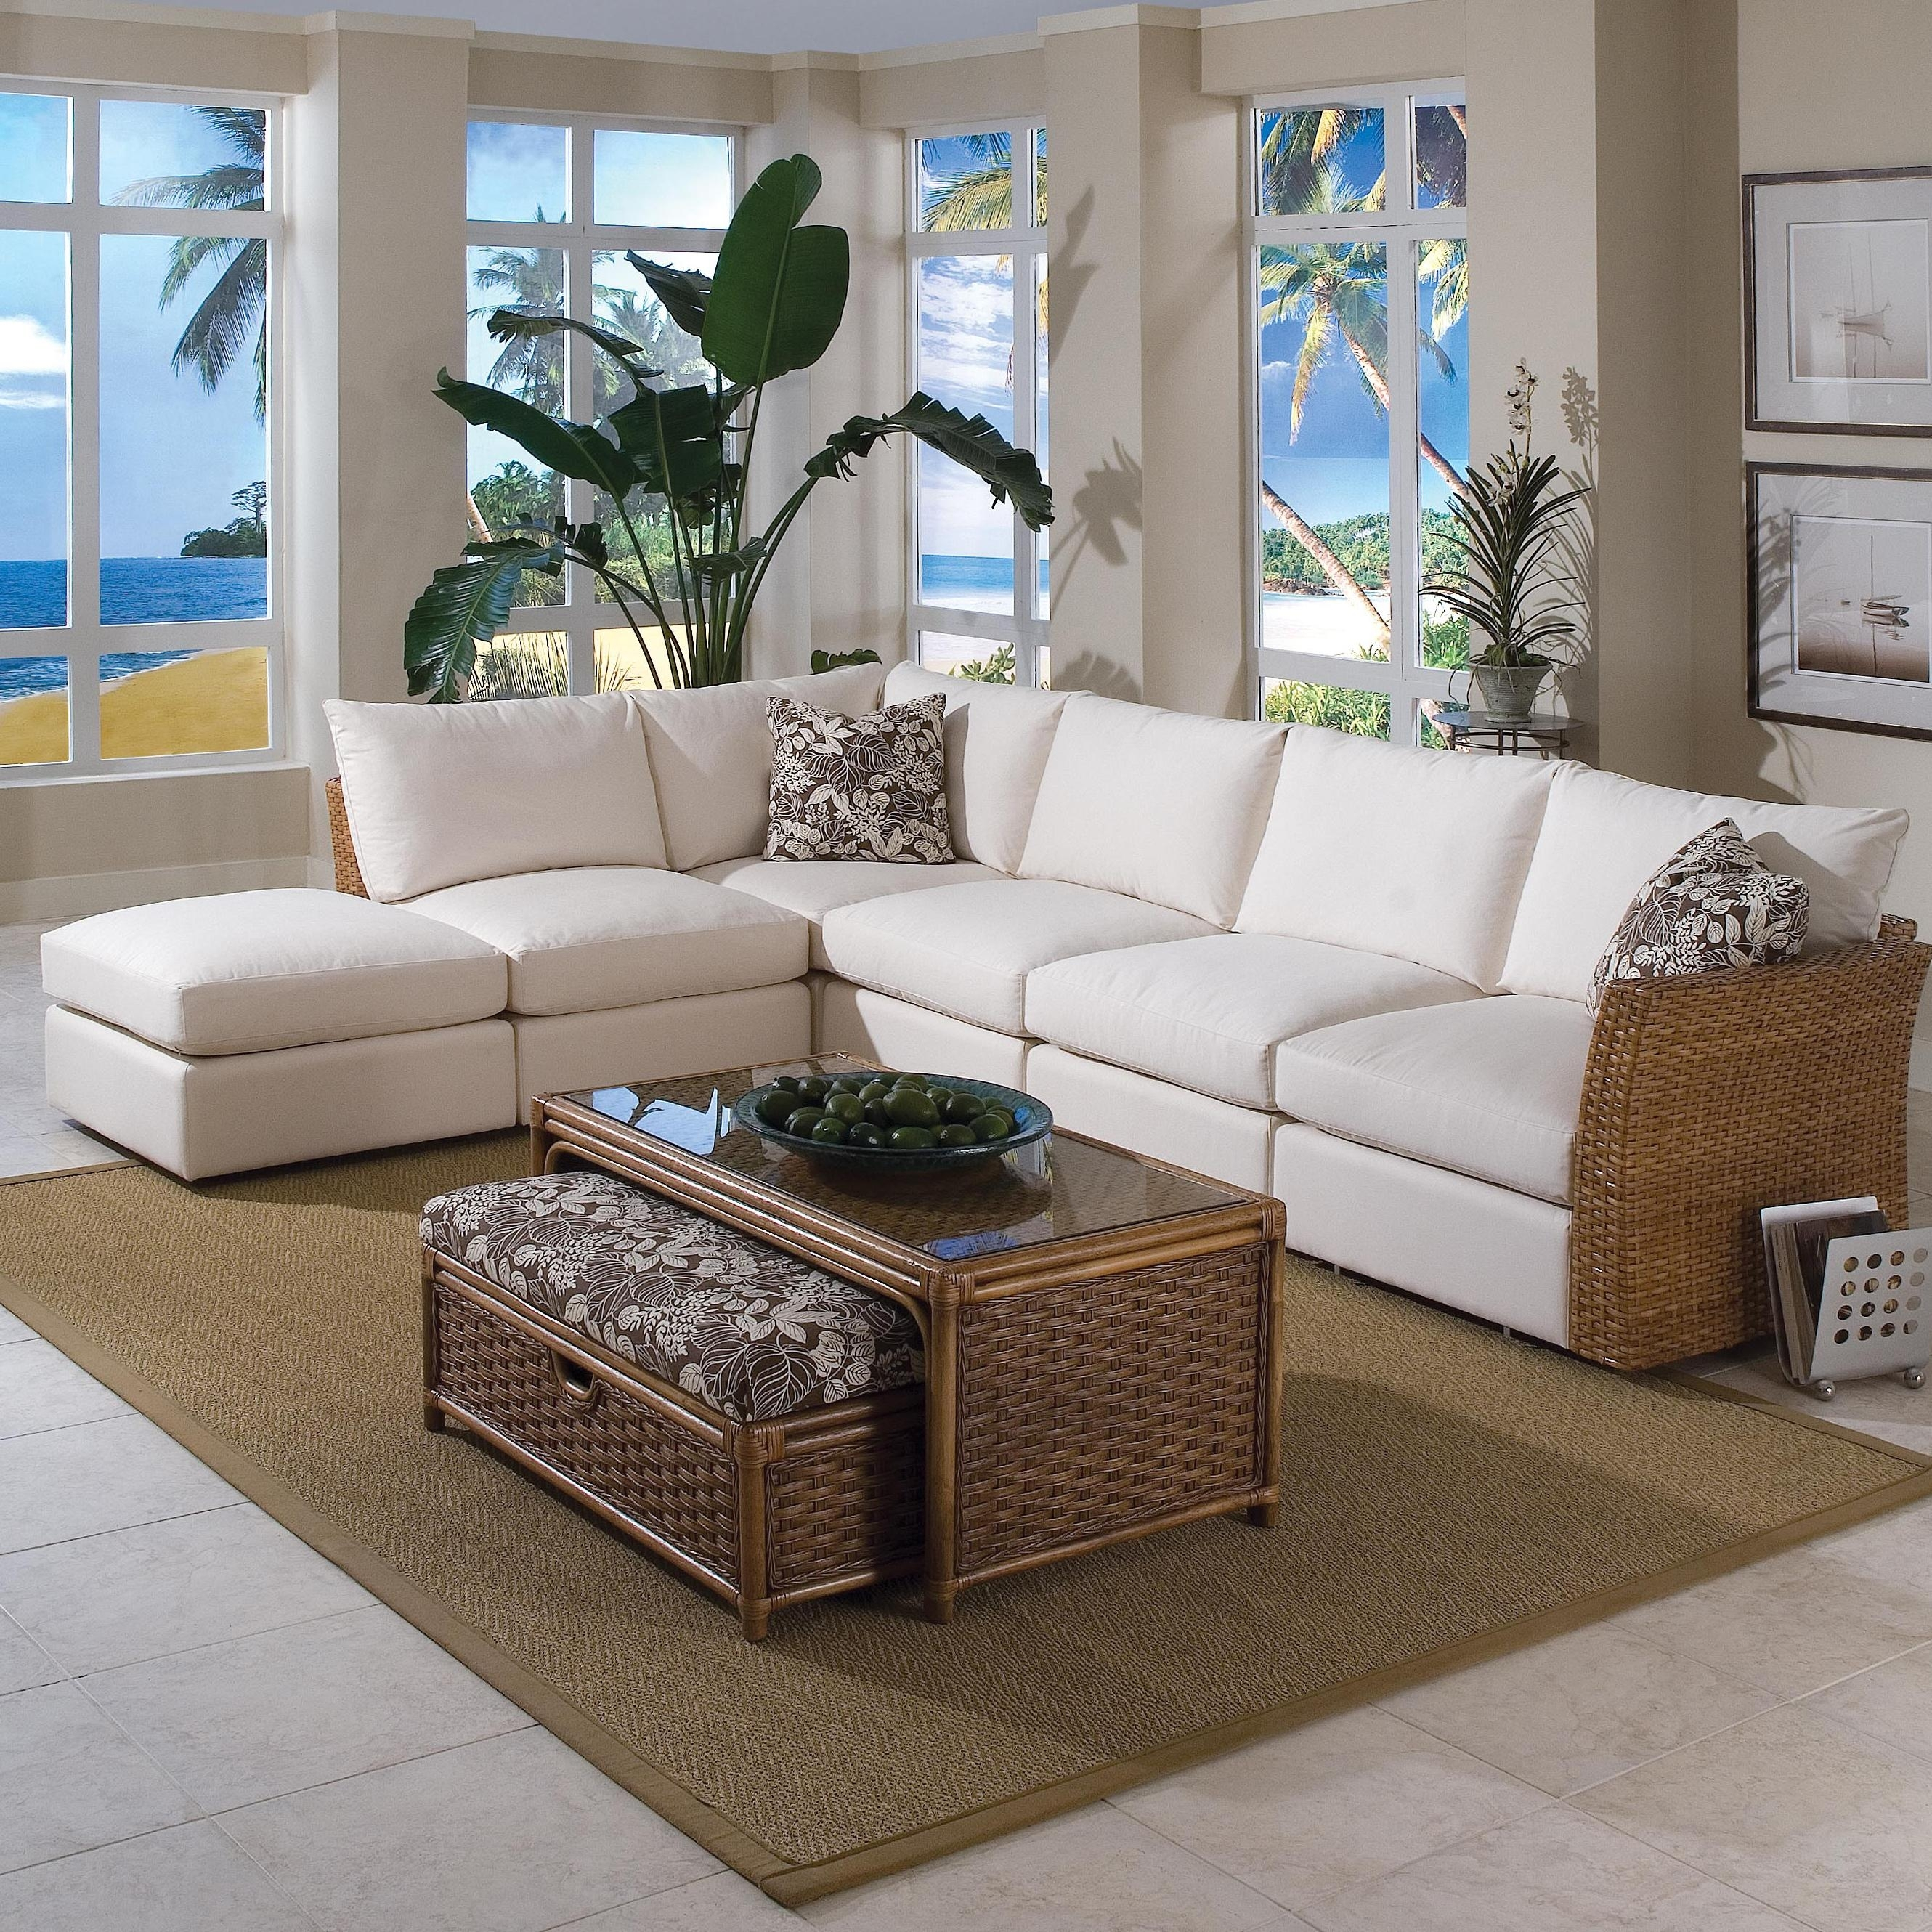 Braxton Culler Grand Water Point Tropical Sectional Sofa With Two With Regard To Johnson City Tn Sectional Sofas (View 9 of 10)